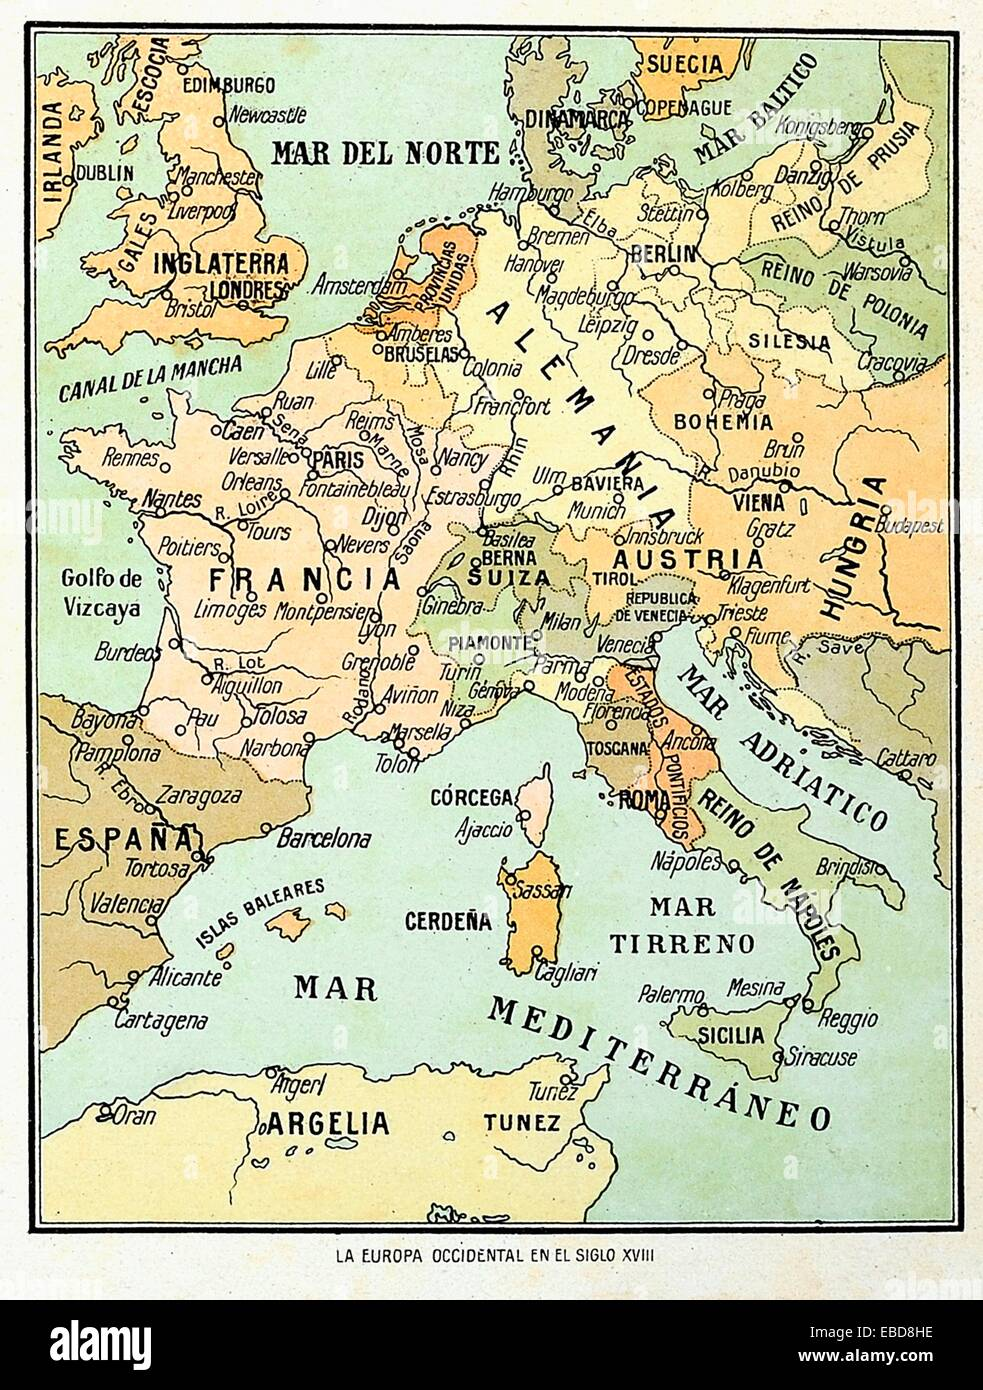 Map Of Western Europe In The 18th Century Stock Photo Alamy